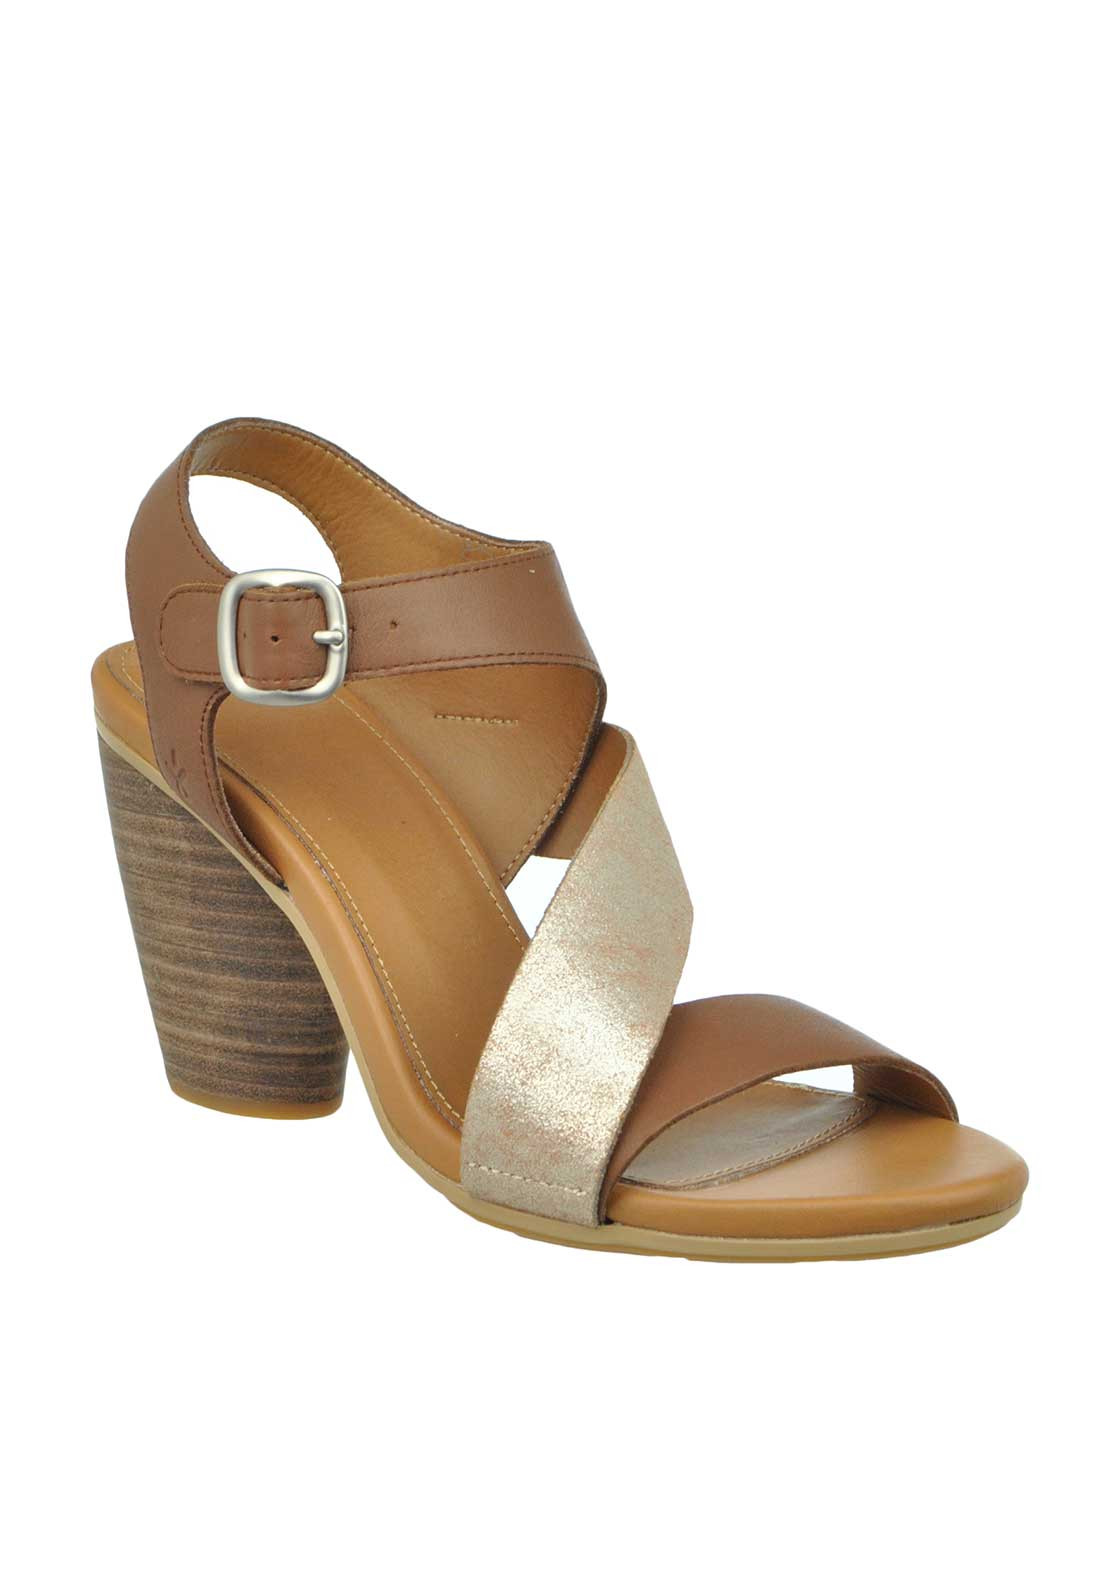 EMU Australia Dawn Leather Shimmer Strap Heeled Sandals, Brown